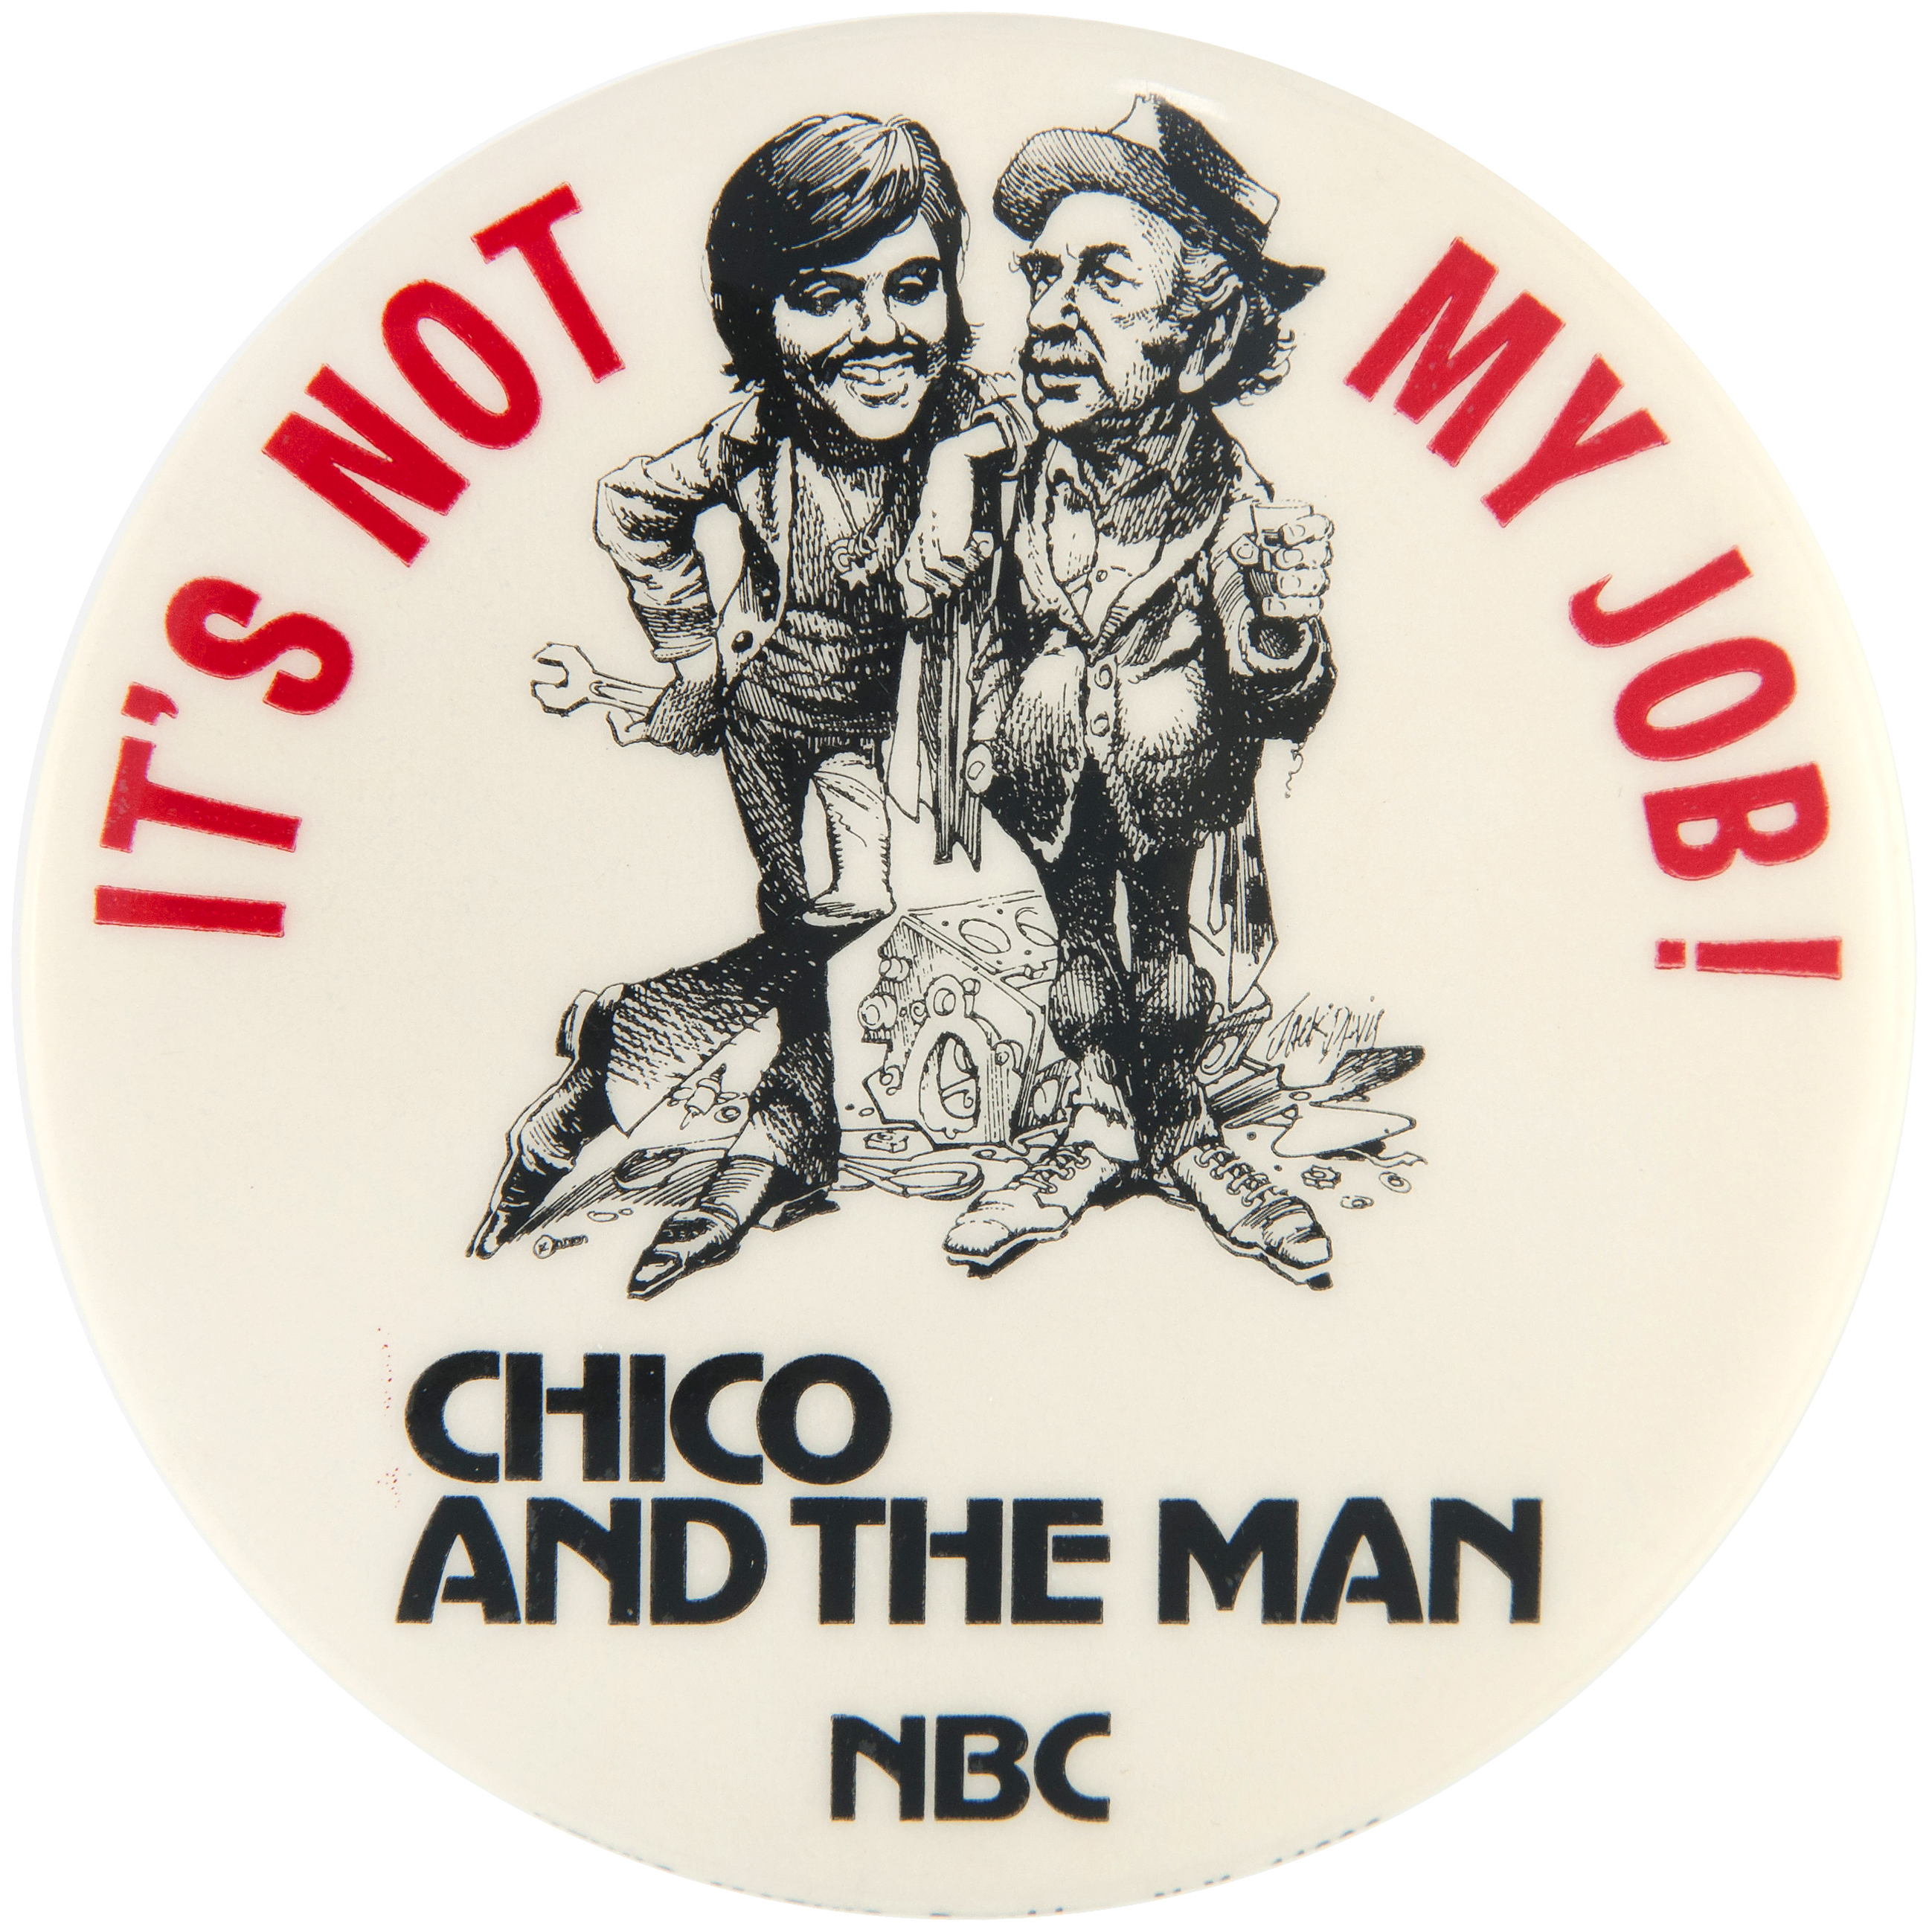 """Hake's - JACK DAVIS ARTWORK ON NETWORK PROMO BUTTON FOR """"CHICO AND ..."""